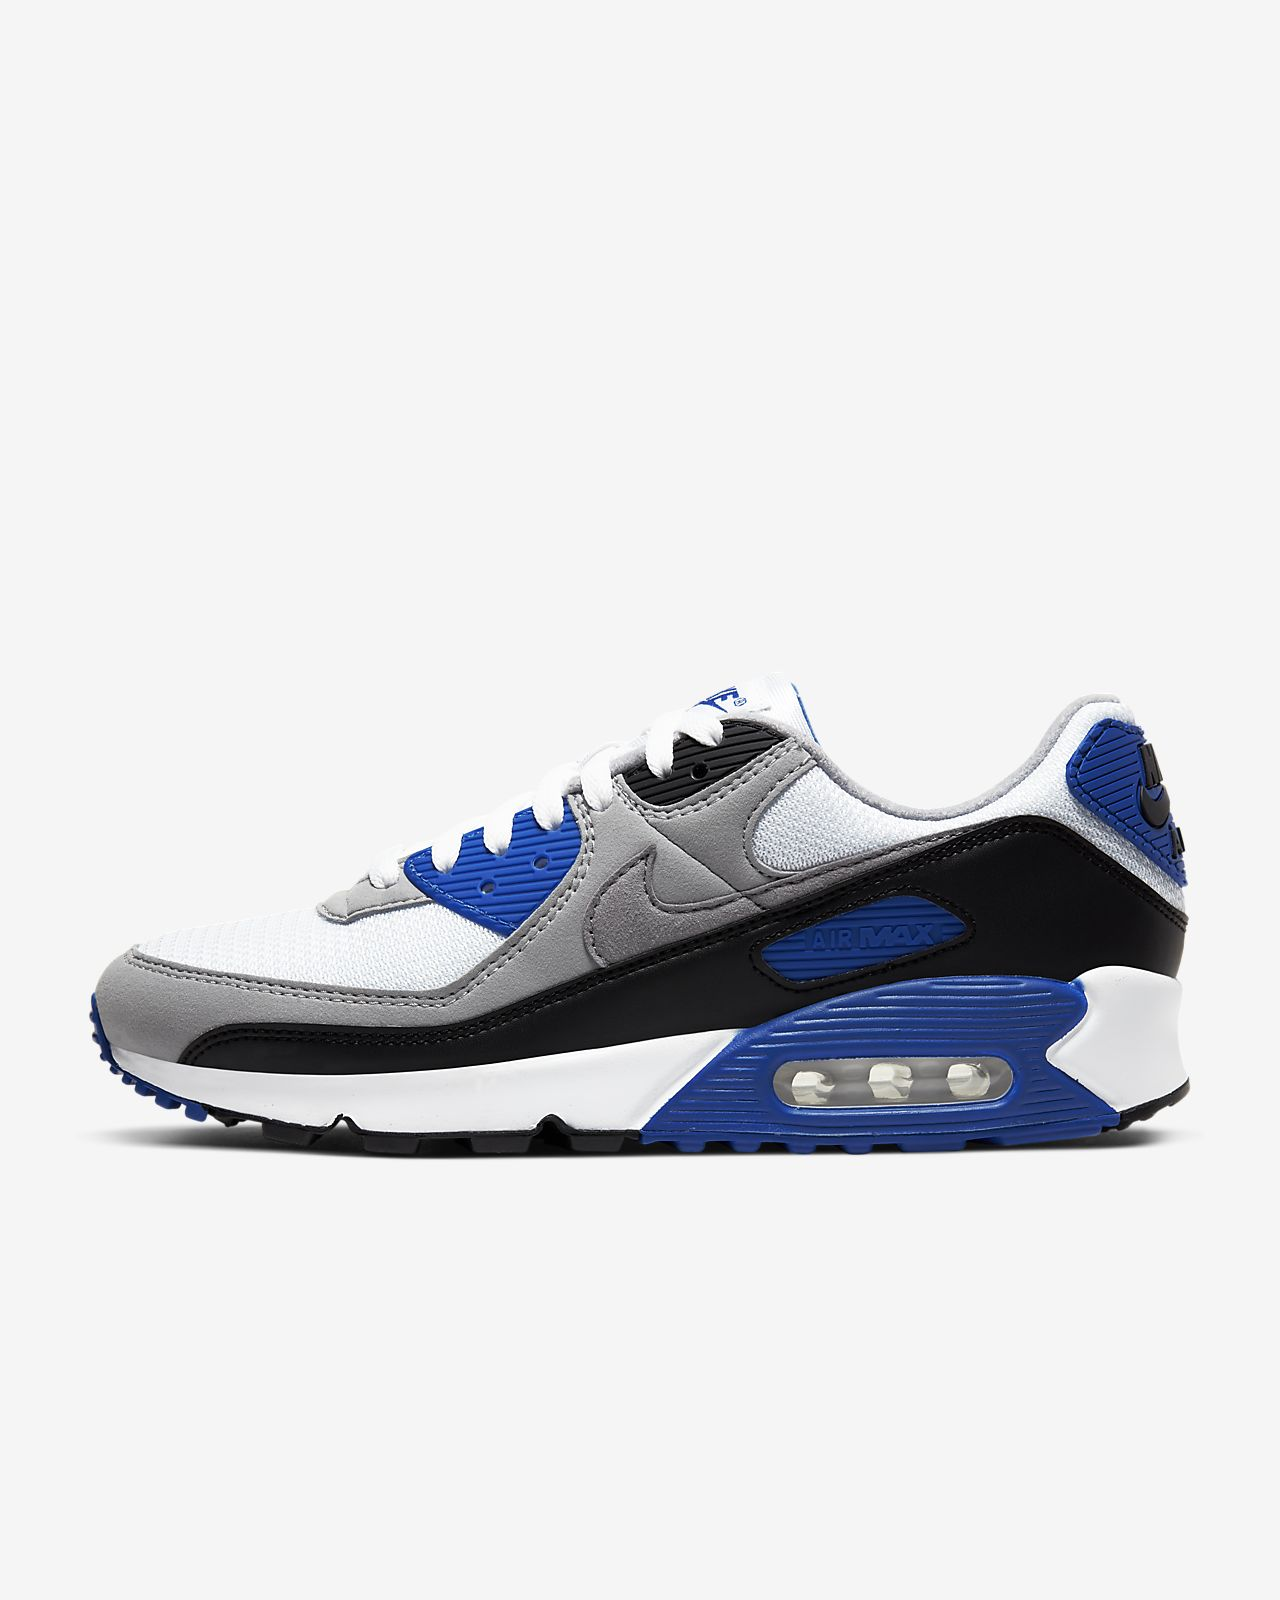 Buy Nike Air Max 90 Men's Running Shoes Vintage Style